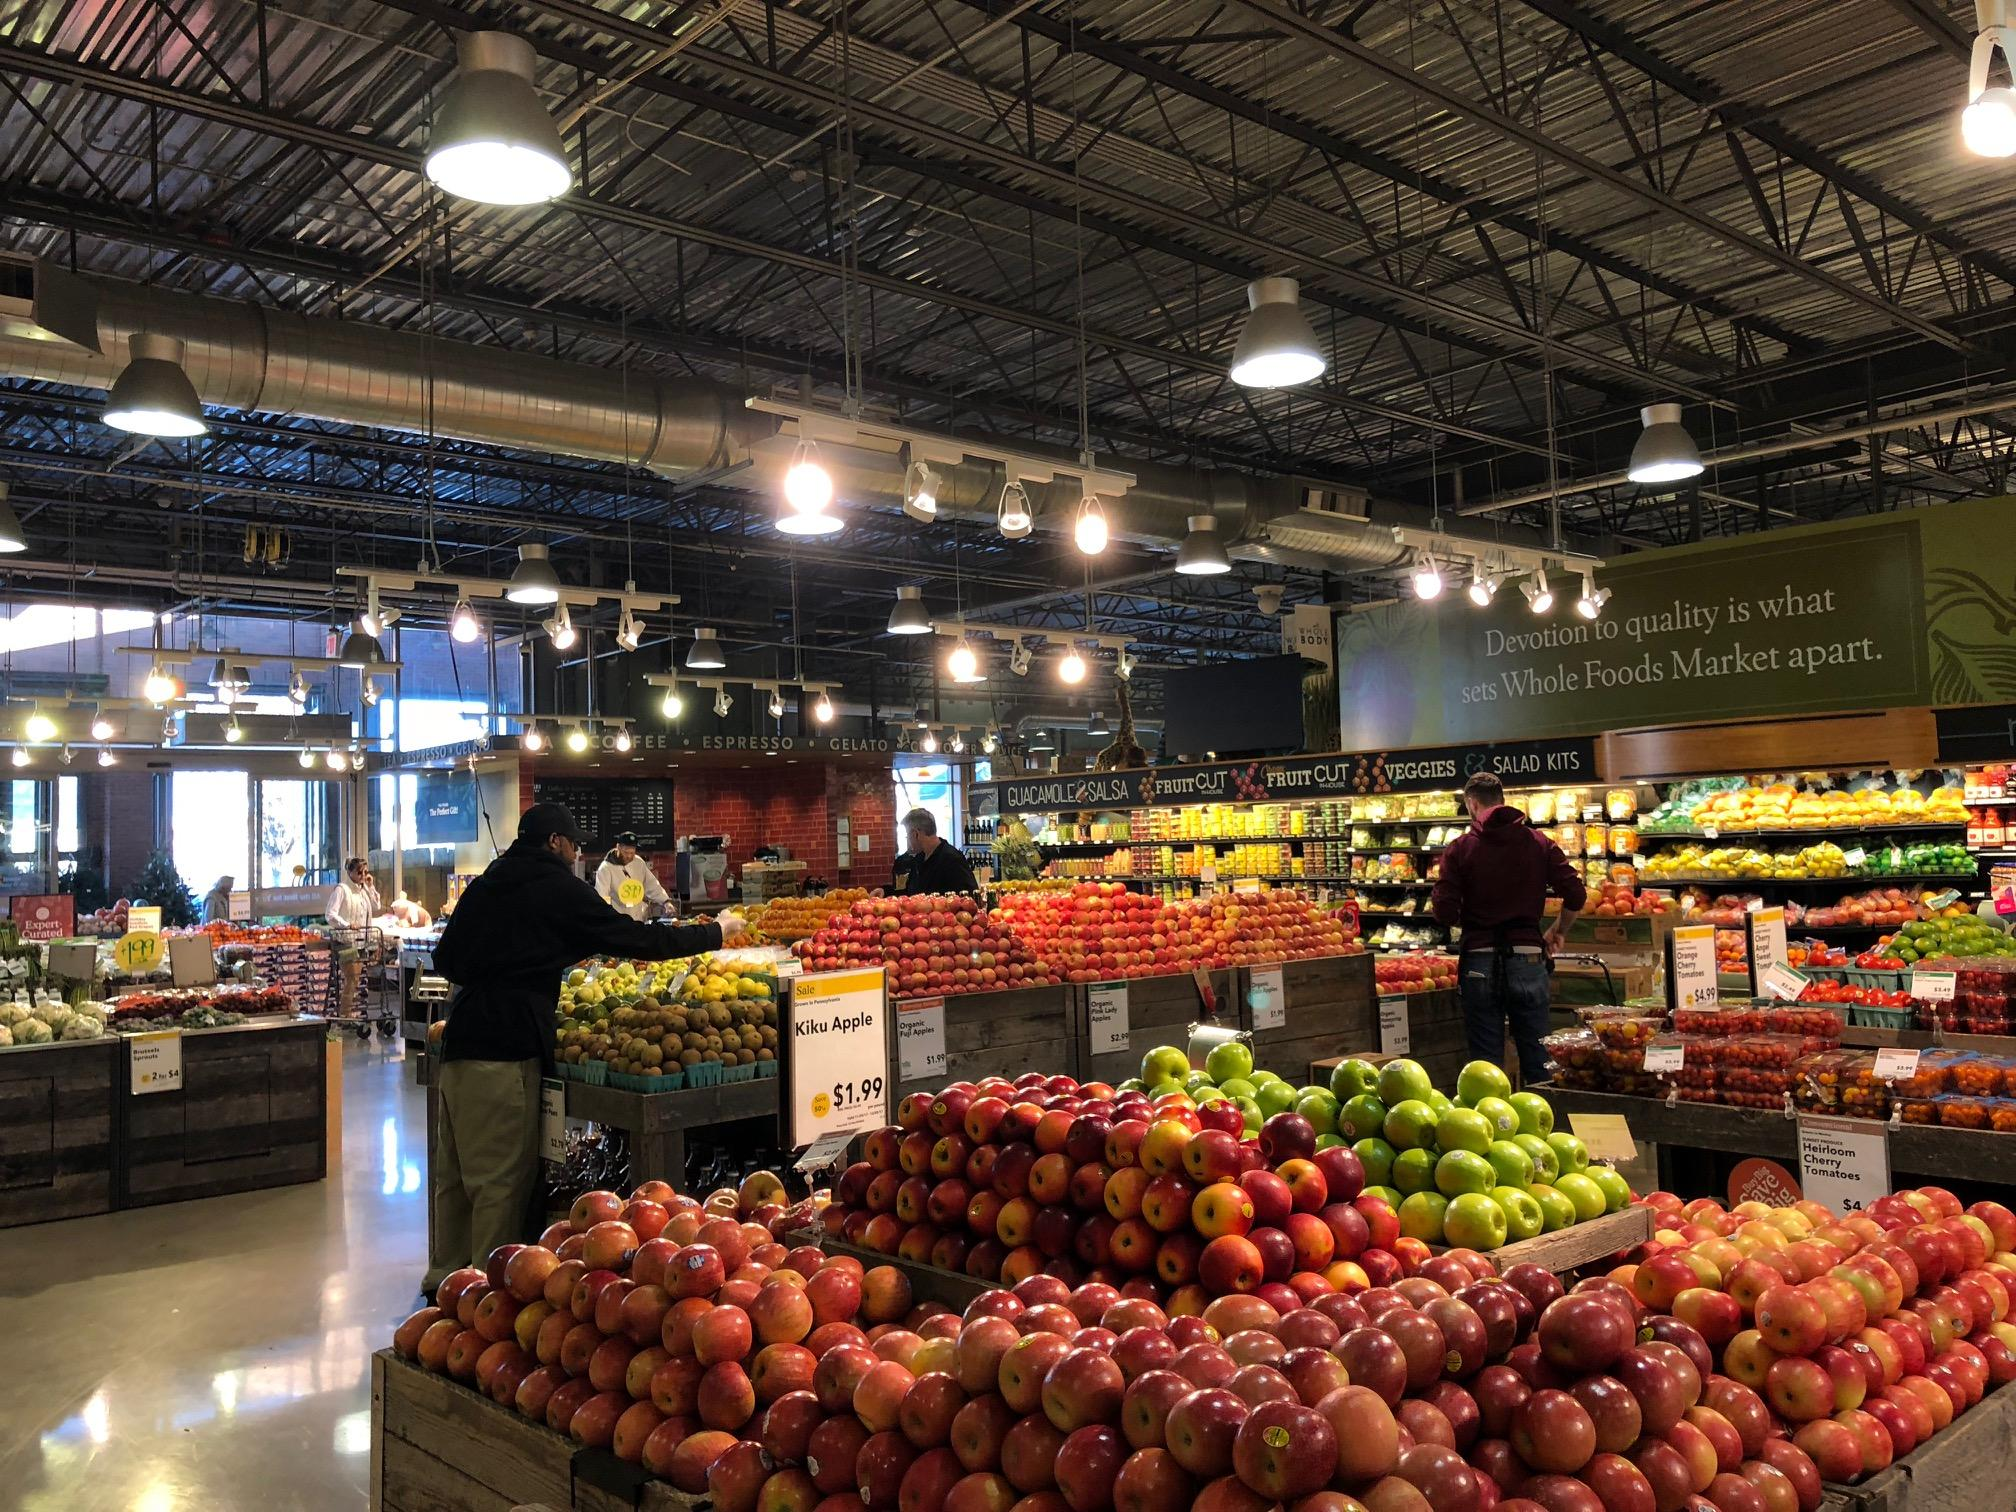 whole foods balancing social mission and growth Whole foods market we can achieve profit growth at whole foods and maintain their social mission by creating how does whole foods sustain positive growth in.